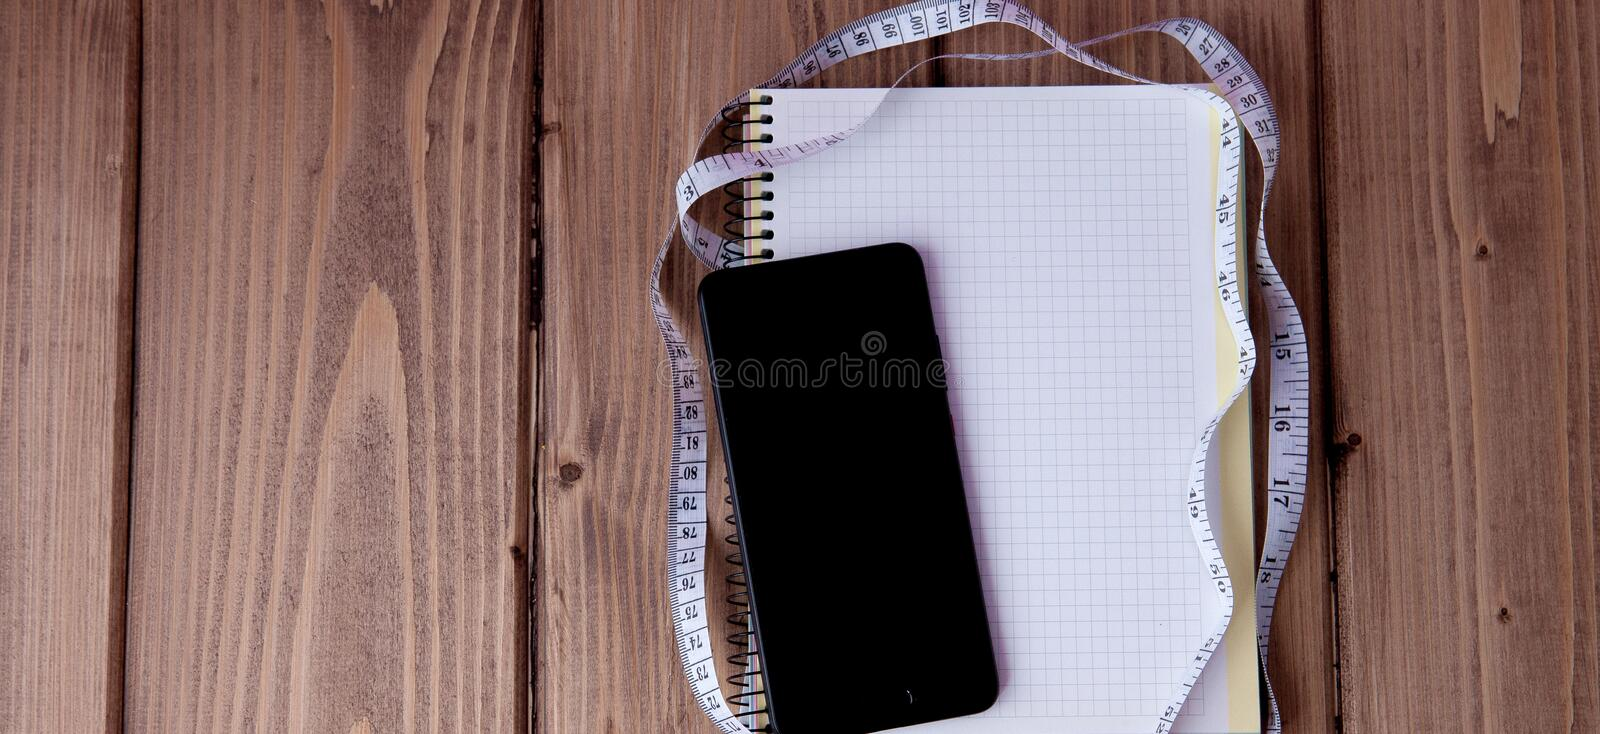 Phone and notebook and meter on a wooden background. Goals for the new year. Planning and schedule concept. To do list.  royalty free stock images